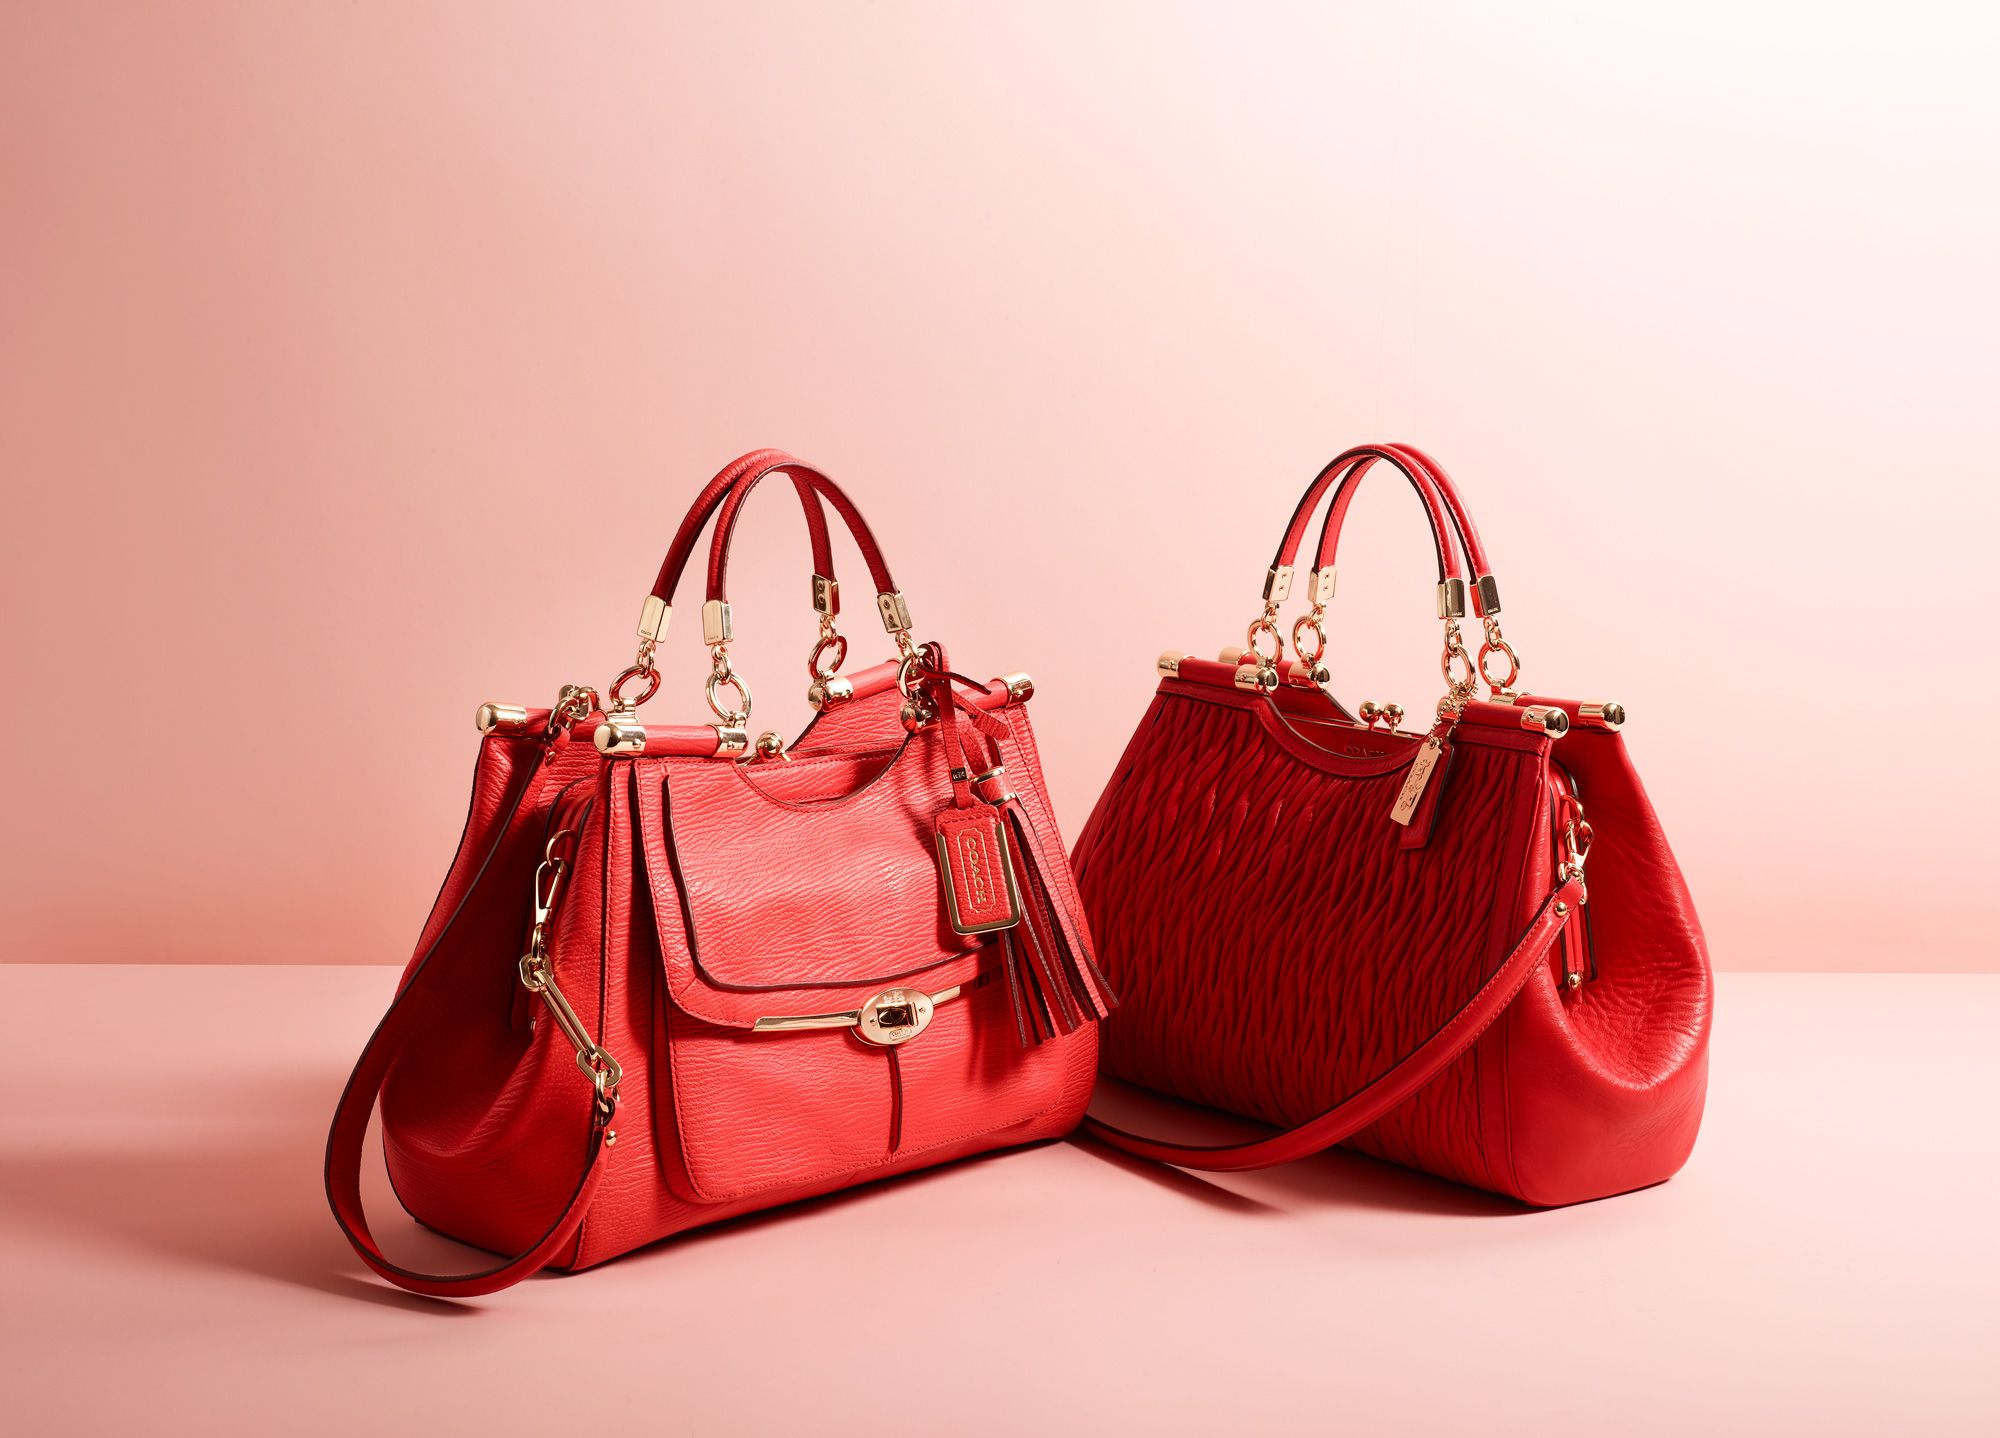 56e6fd5790d2 The Madison Carrie in Gathered Twist Leather and the Madison Pinnacle  Carrie Satchel from Coach